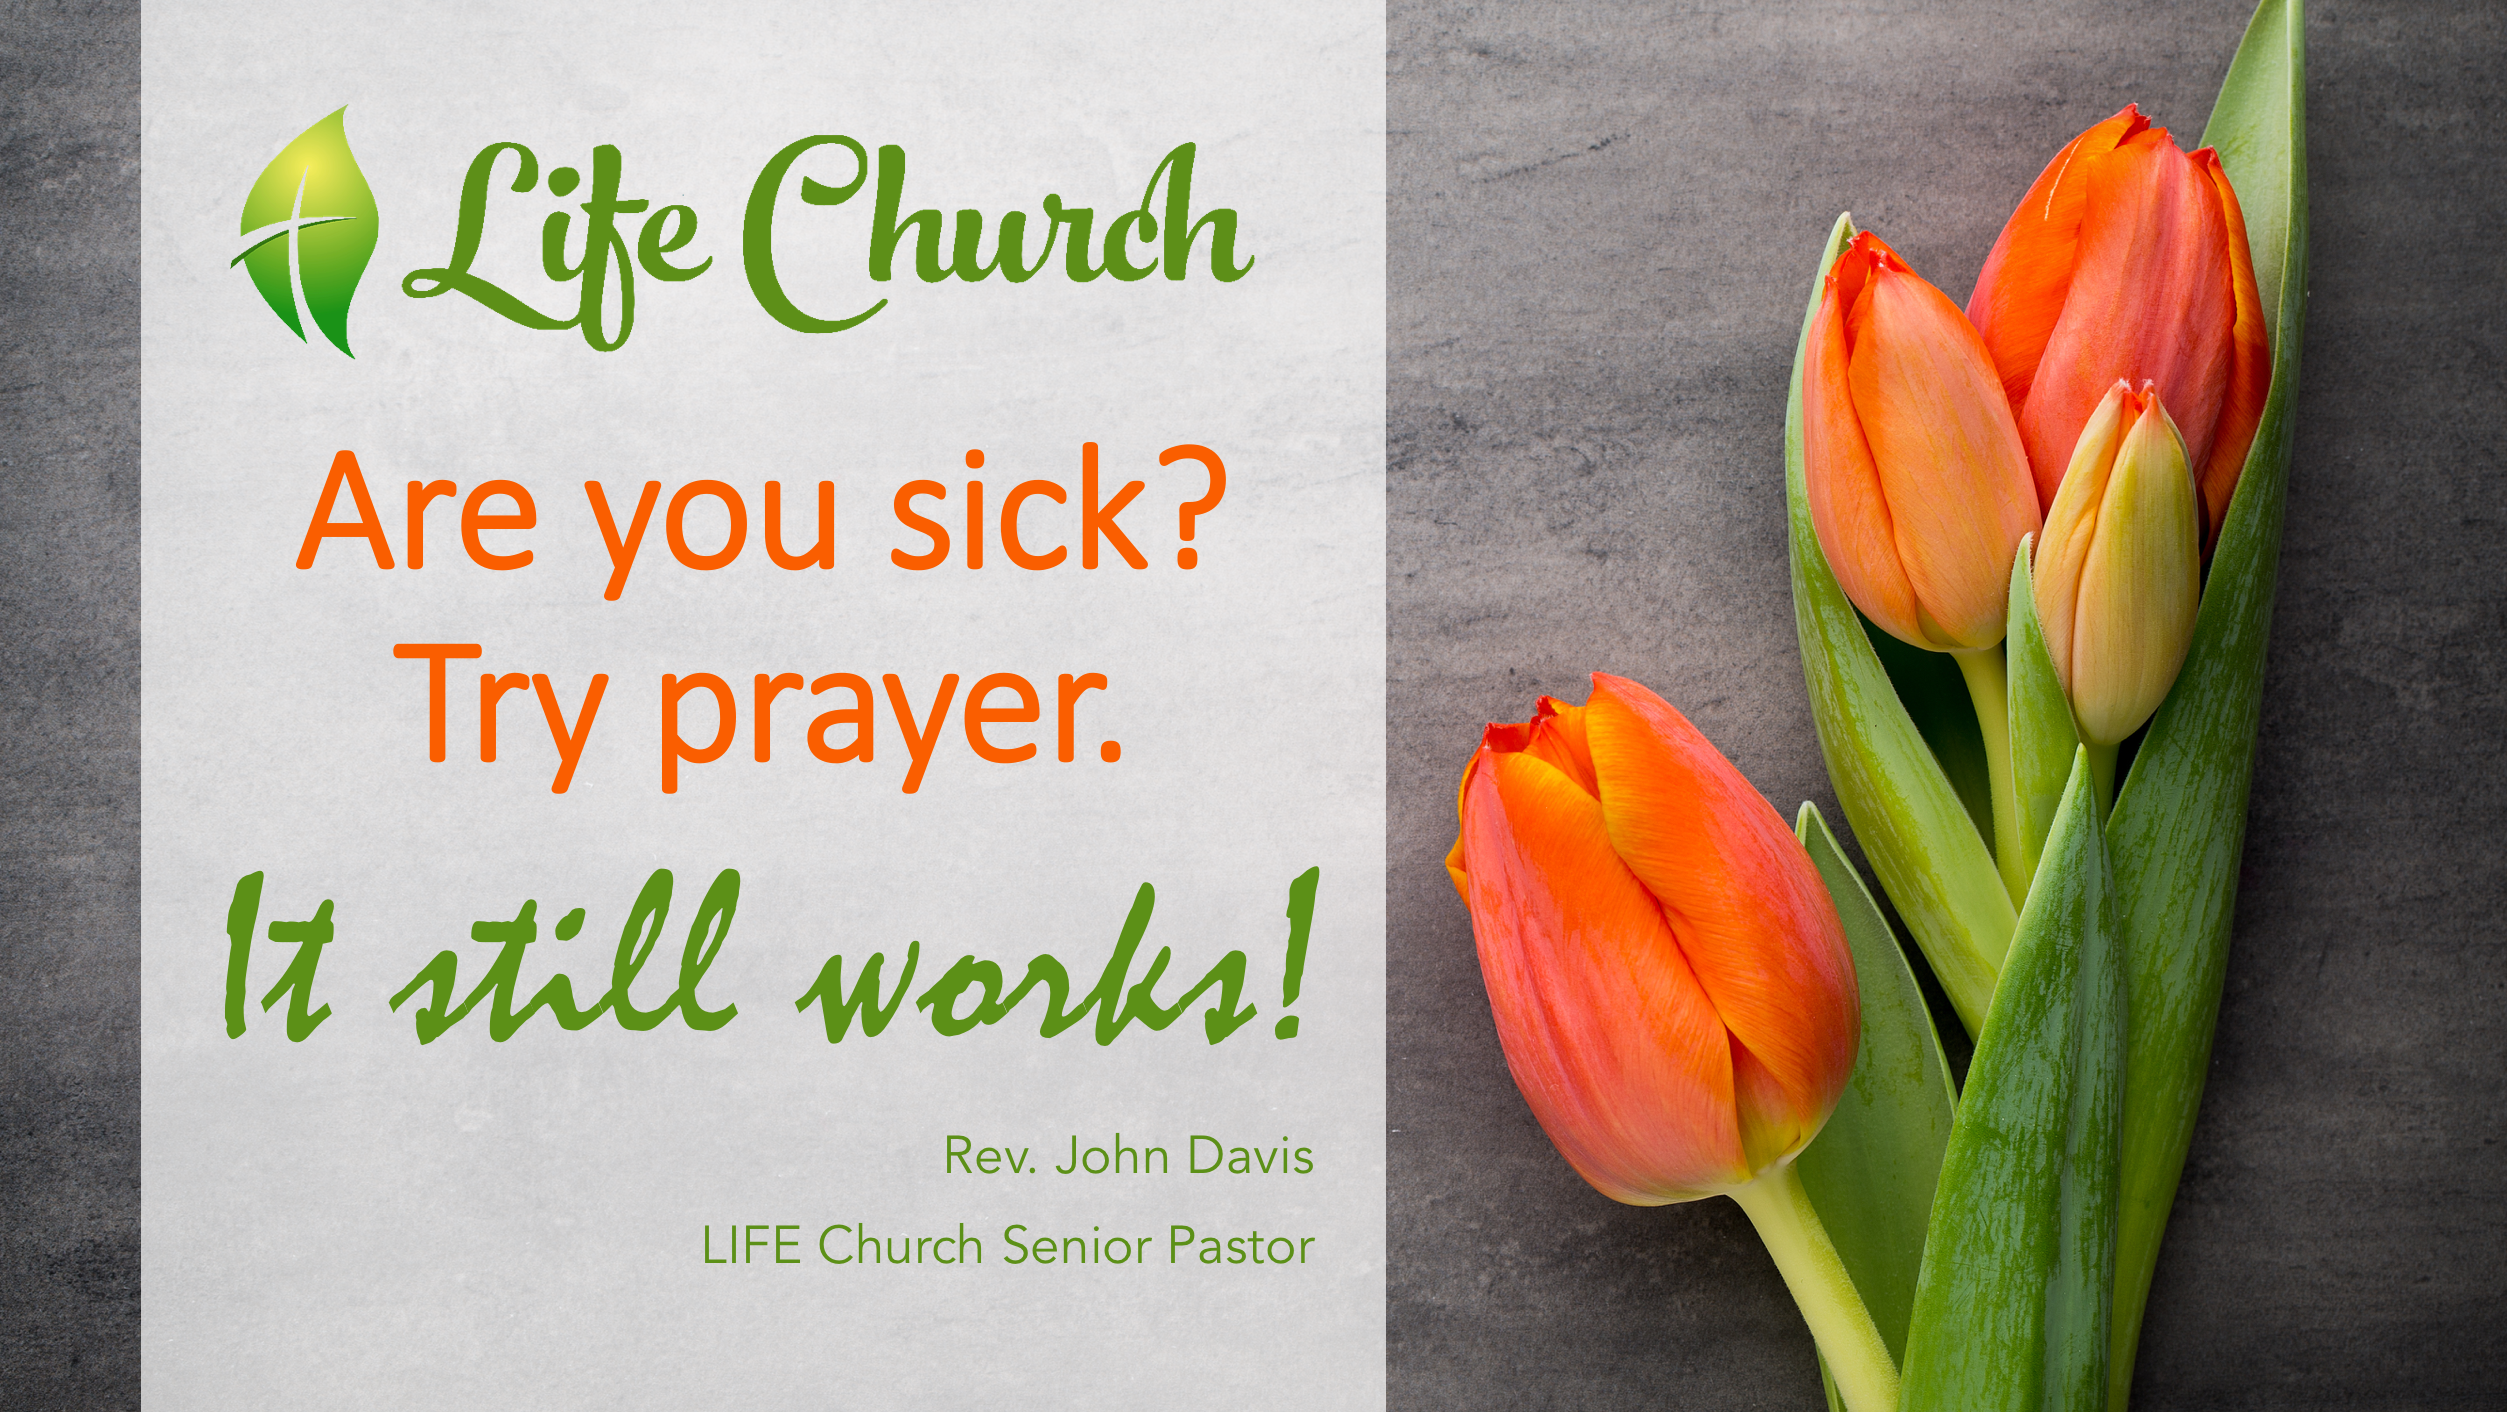 LIFE Church - Facebook - Try prayer